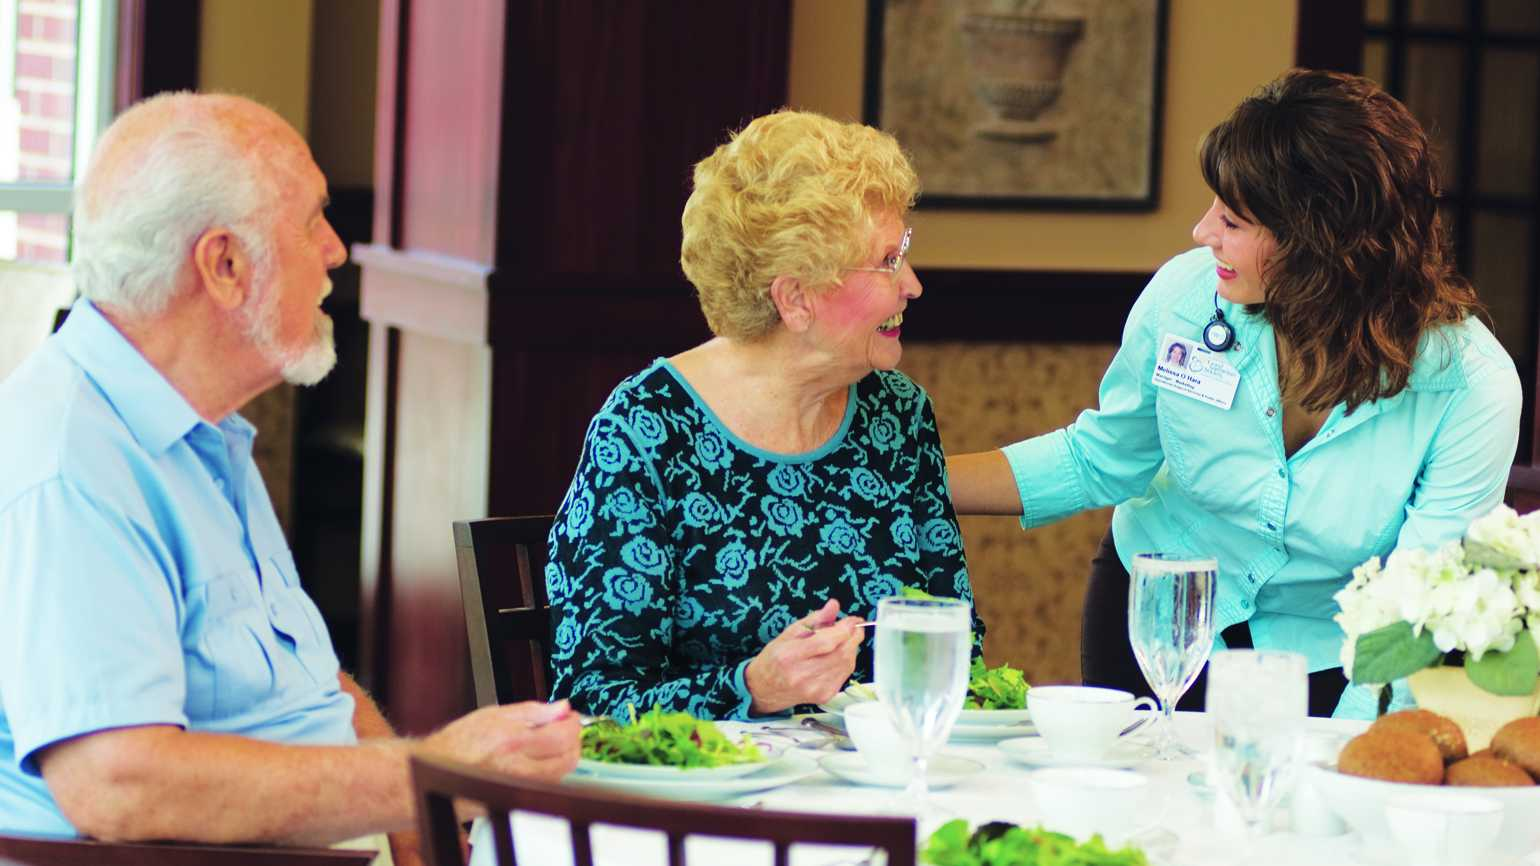 A senior citizen couple eating healthy at a table conversing with an aide.